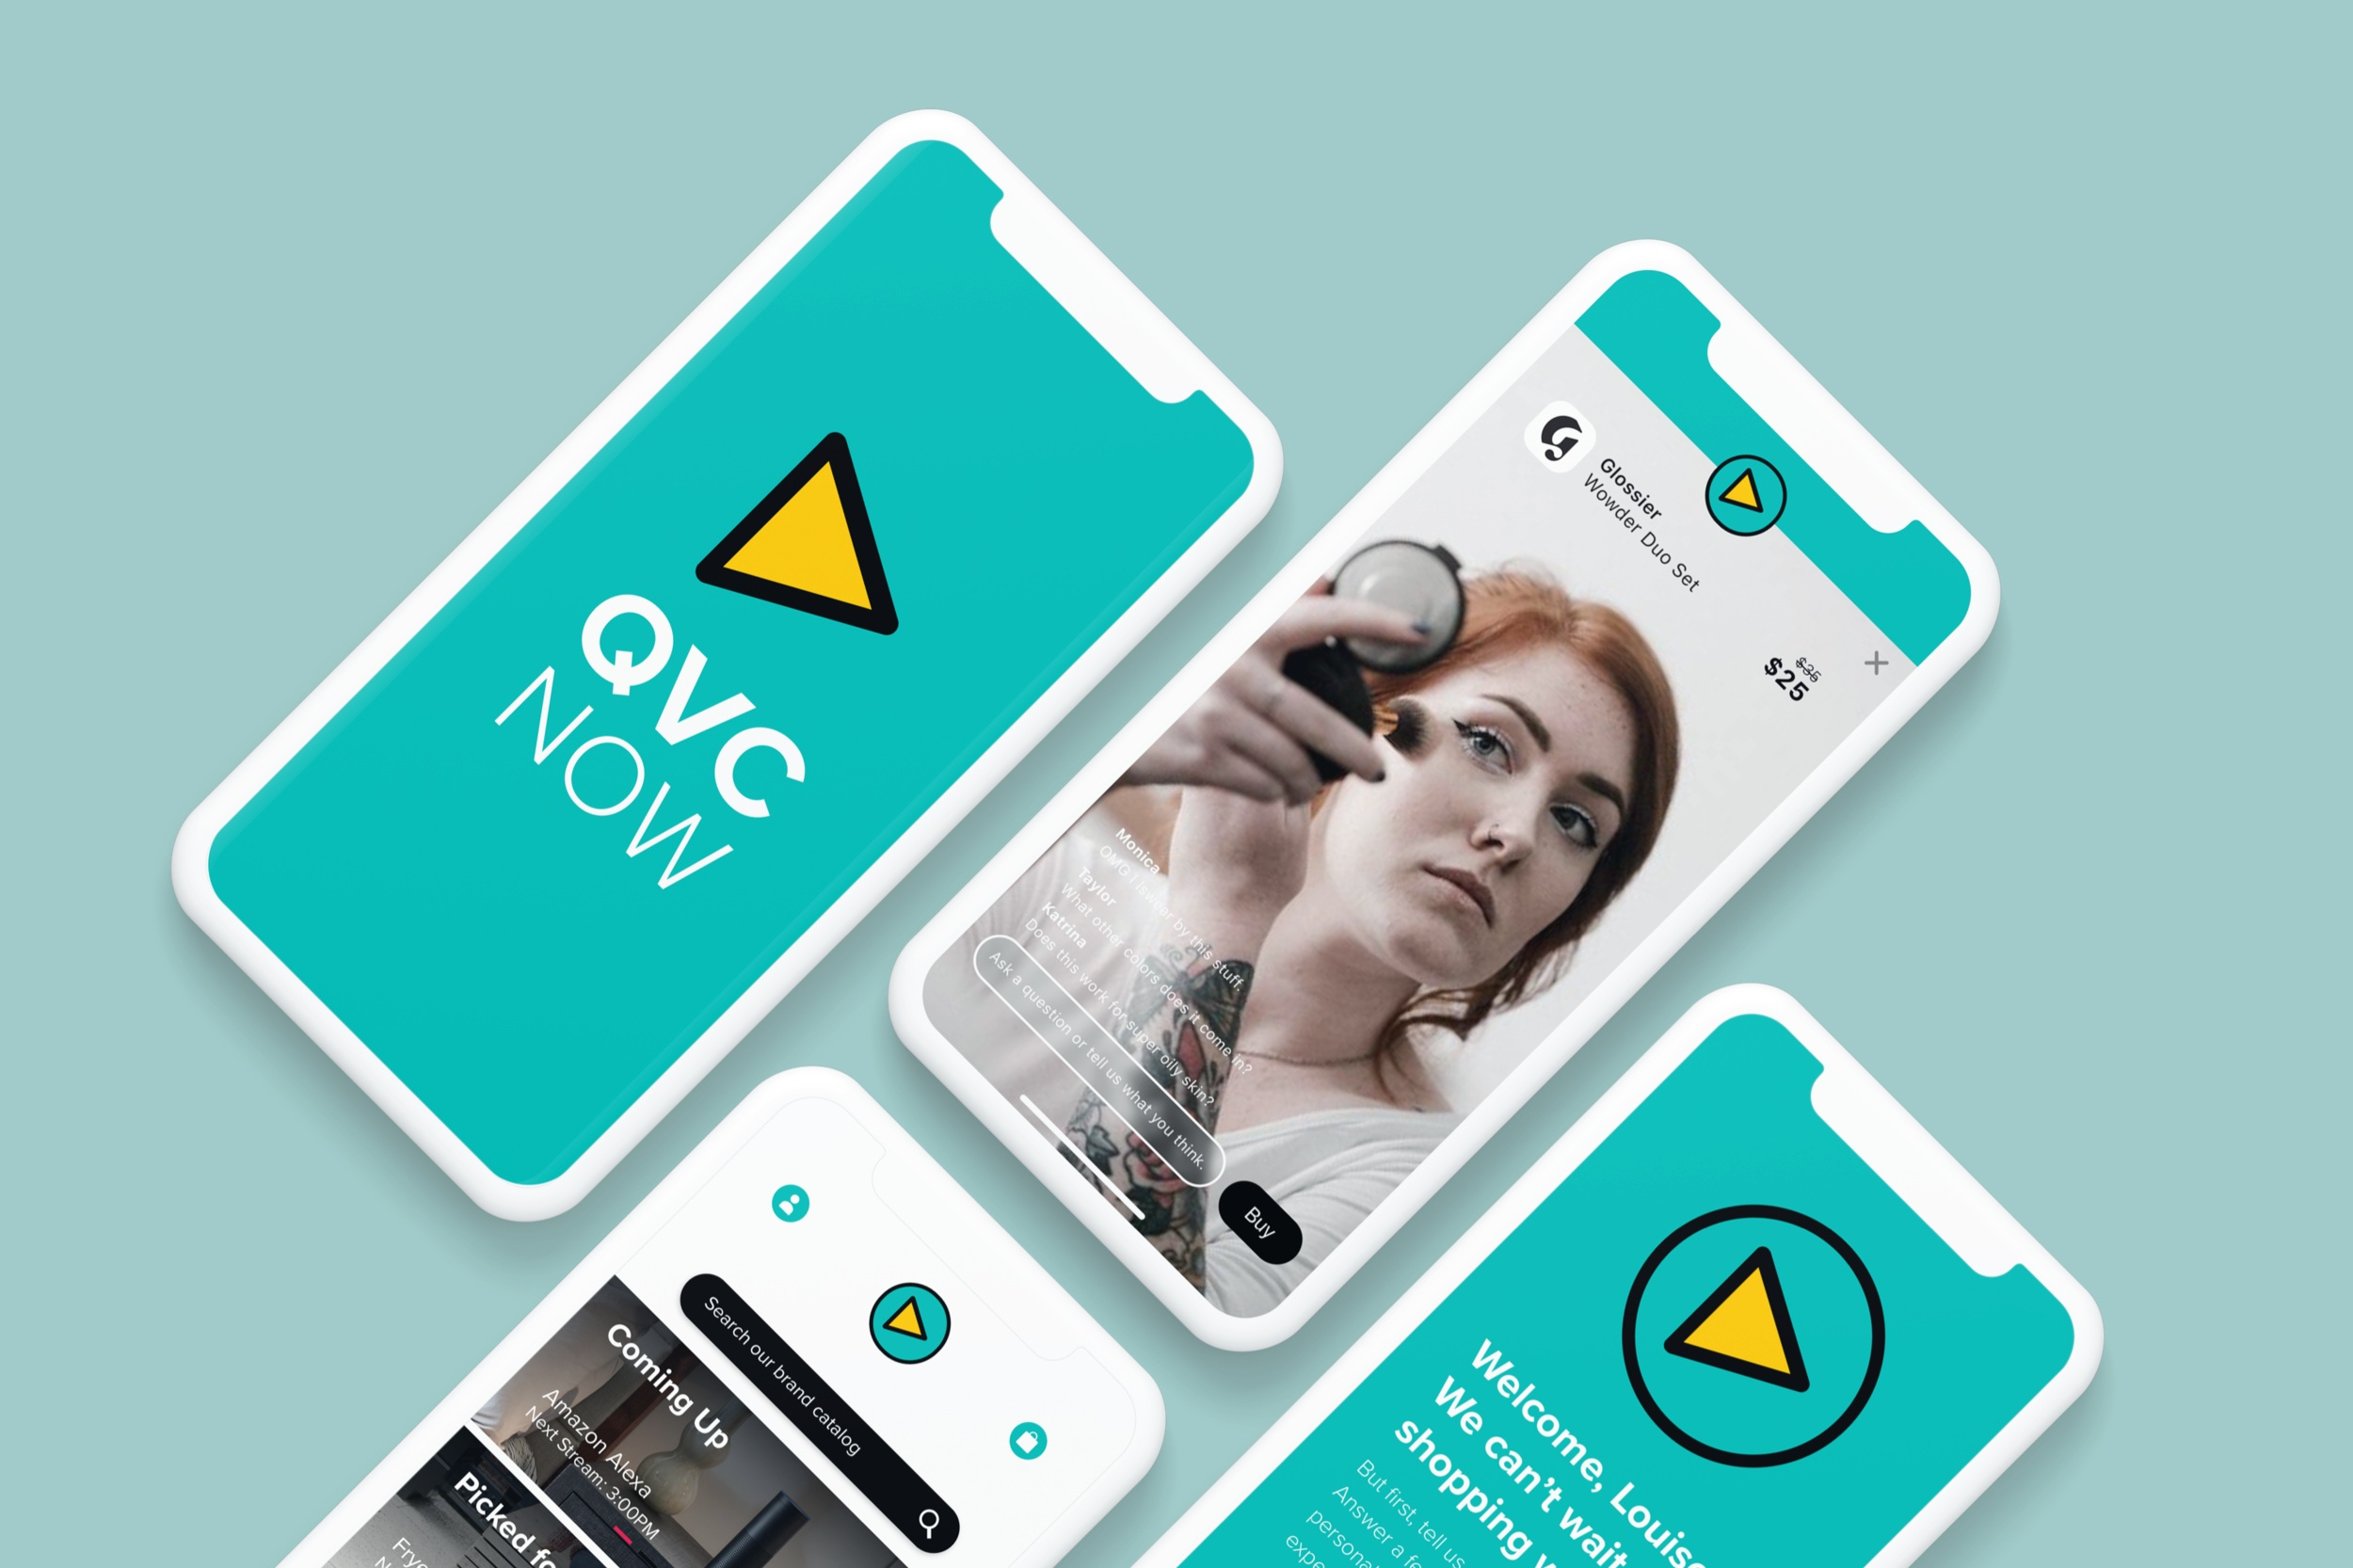 Helping QVC redefine mobile commerce - Product Strategy / UX Design / UI Design